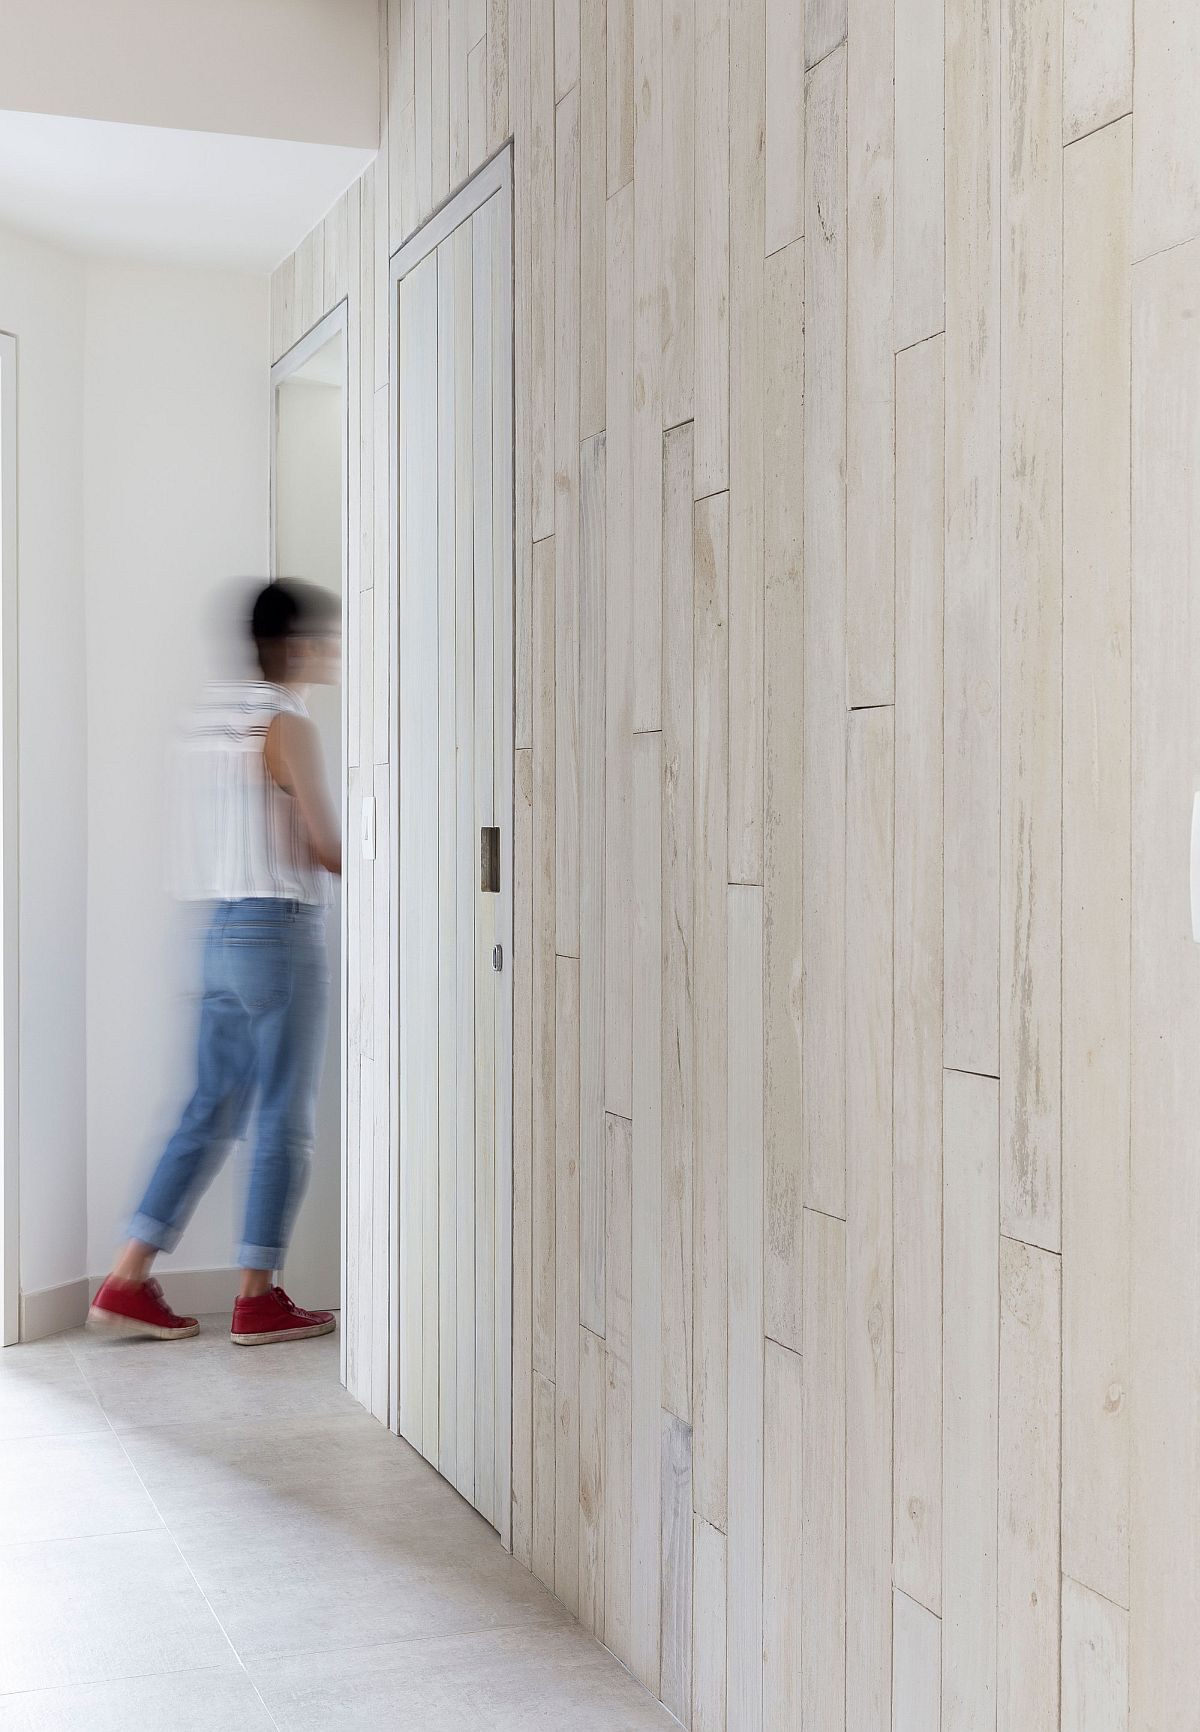 Wooden slats on the walls give the interior warm ad inviting glow